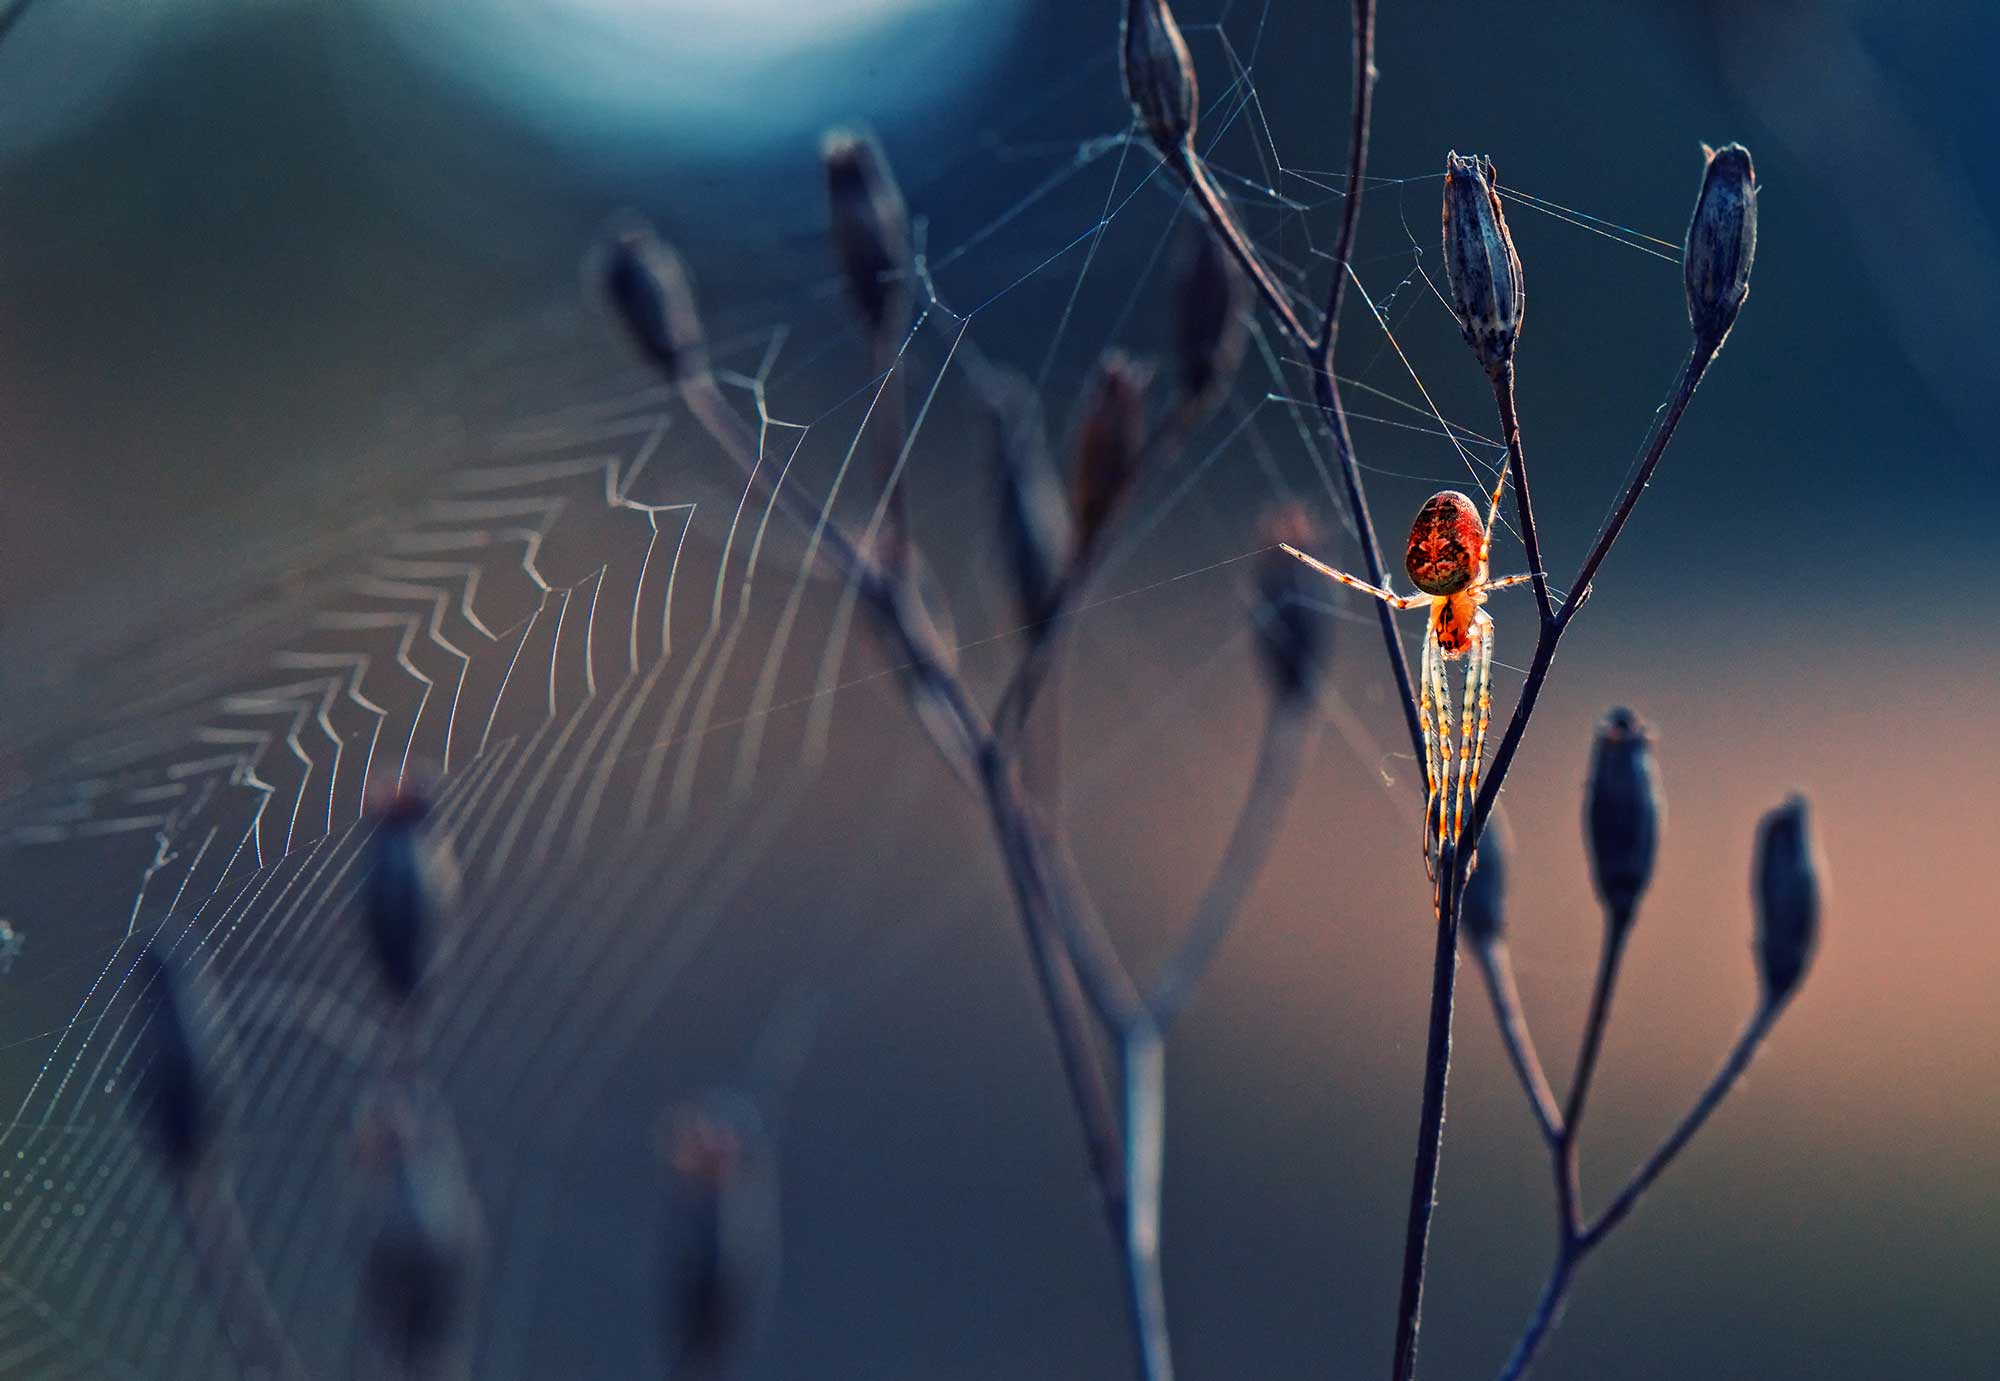 A spider at sunset in Predel, Bulgaria.